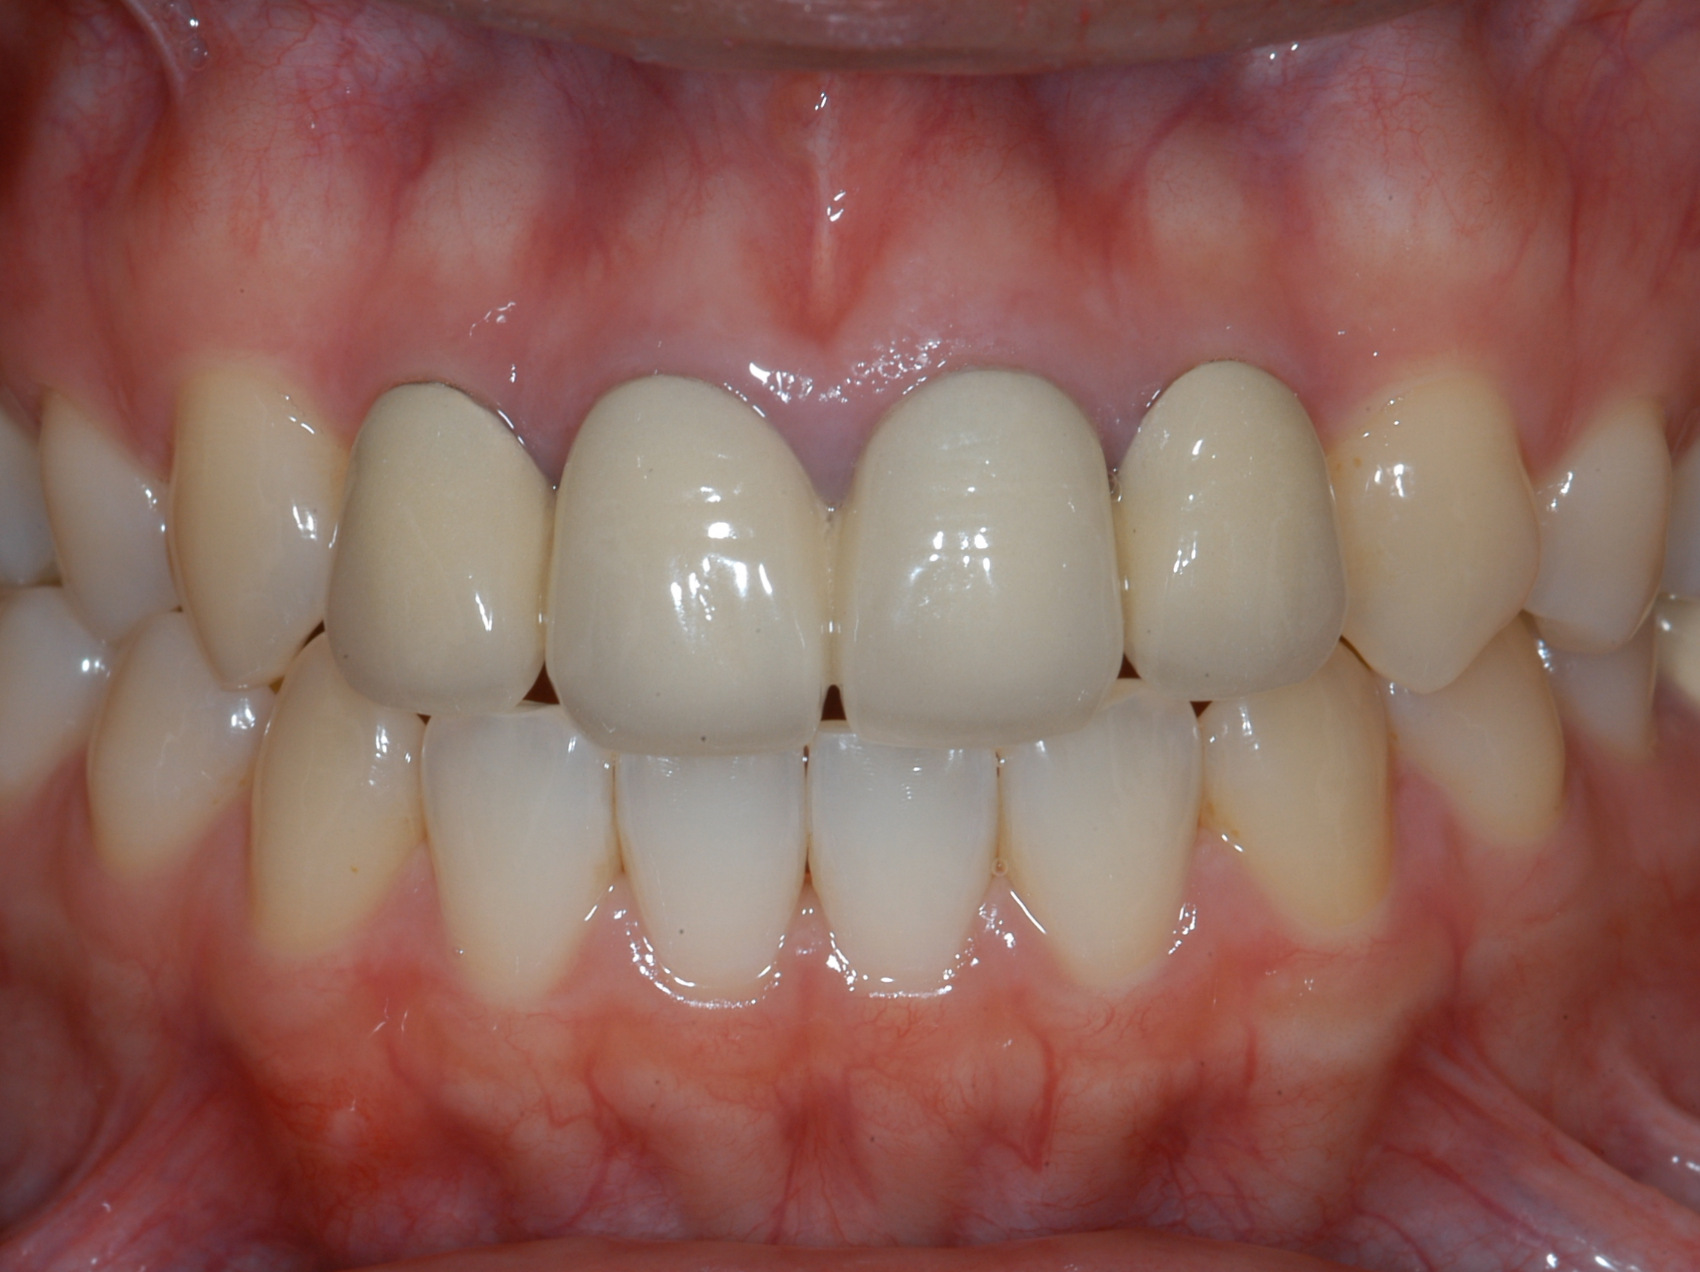 Dental Caps And Bridges Dental Reconstruction For Teeth